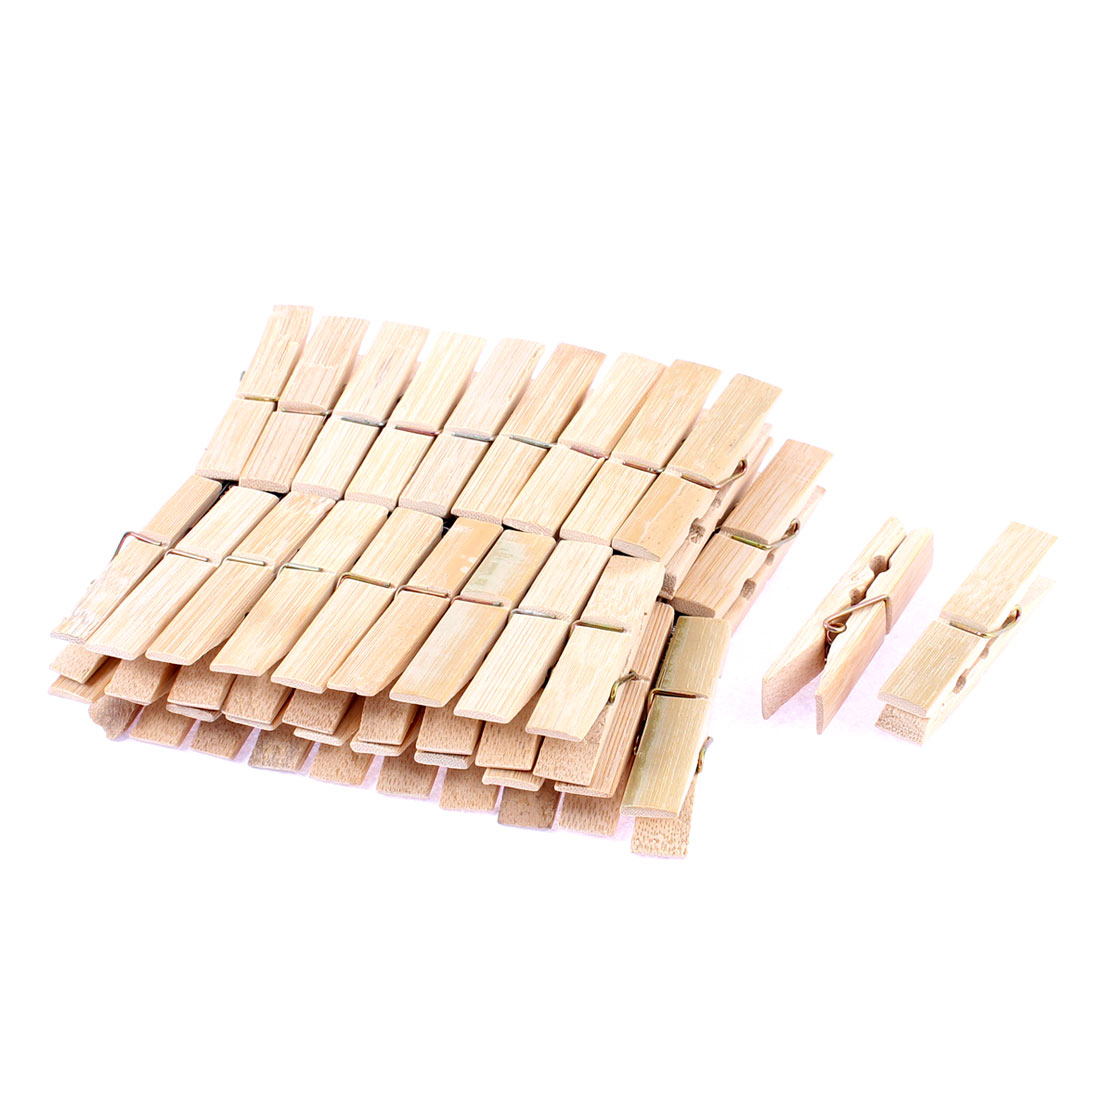 40pcs Wooden Photos Crafts Laundry Hanging Clothes Pins 6cm Length